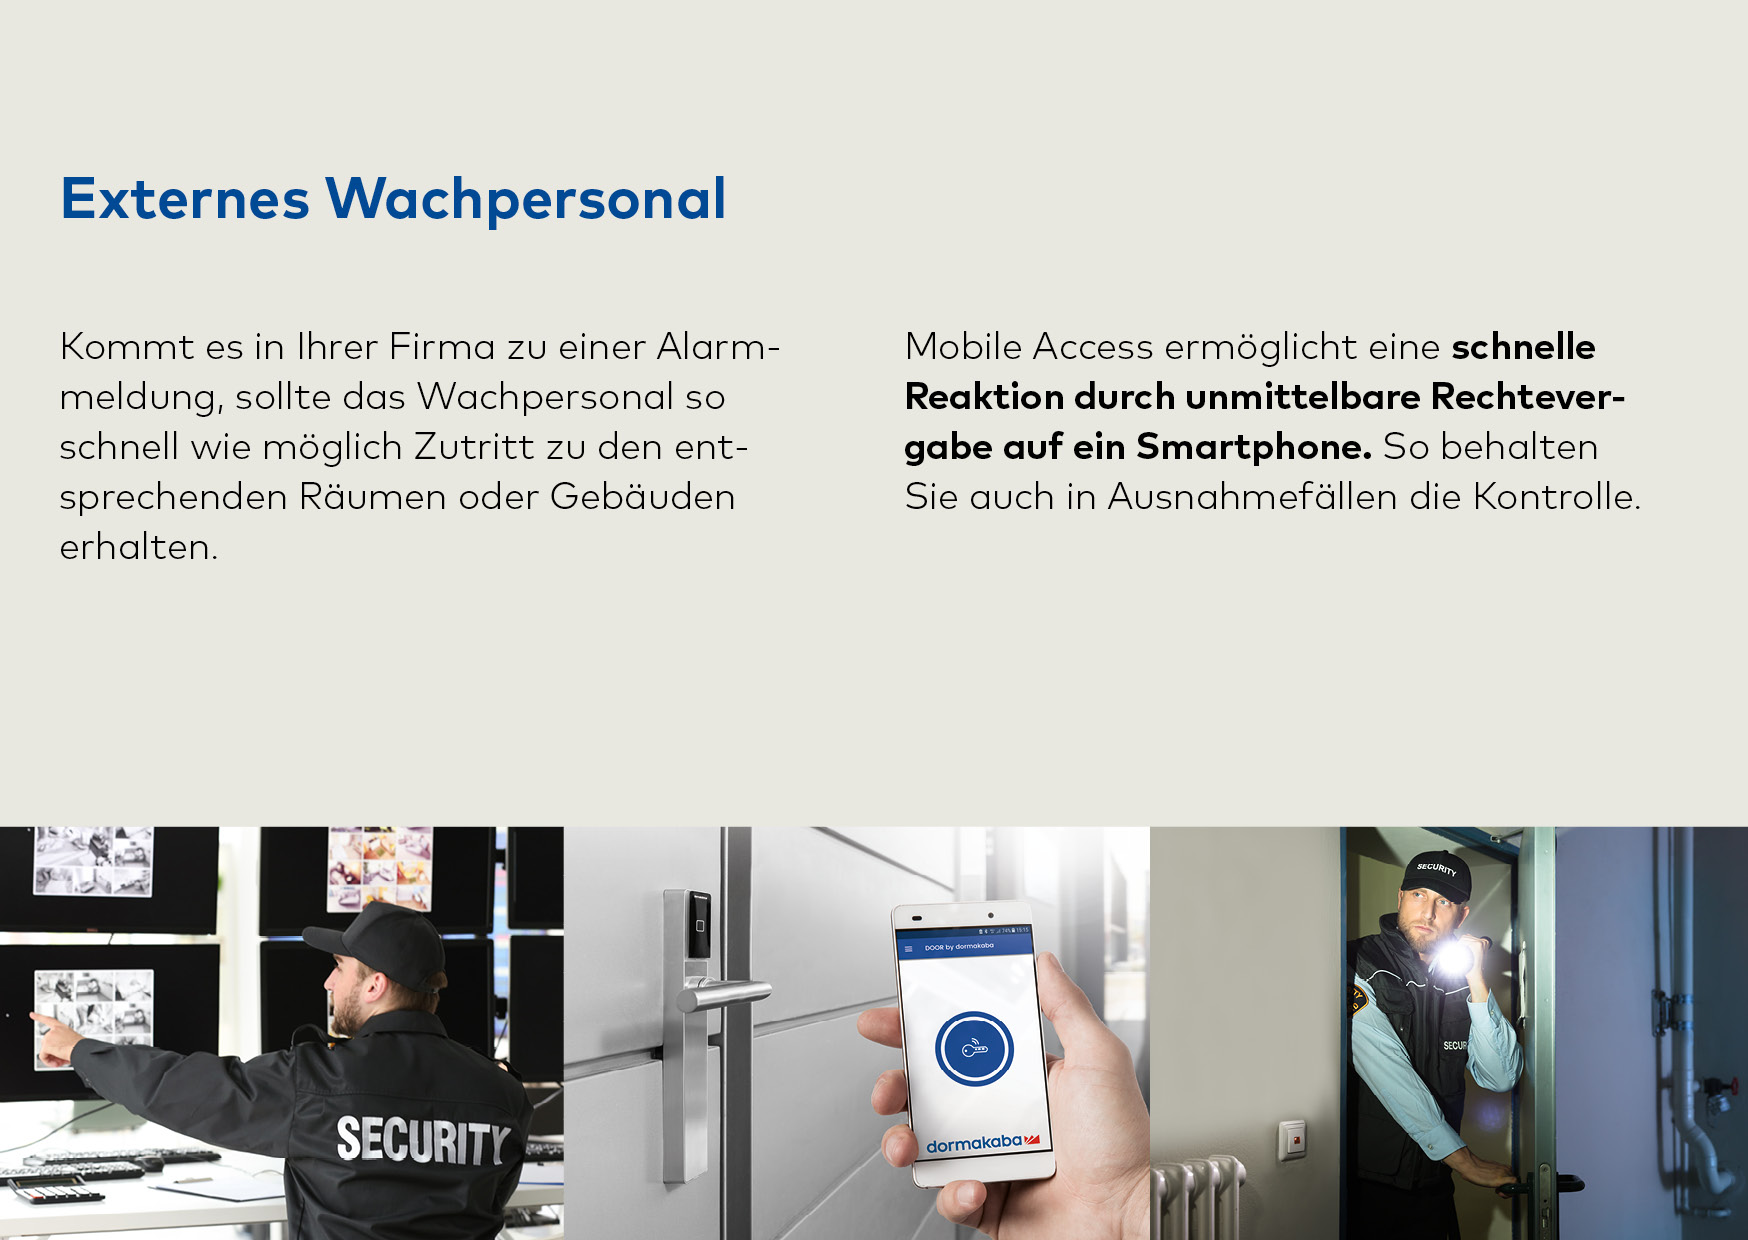 Wachpersonal_Mobile_Access